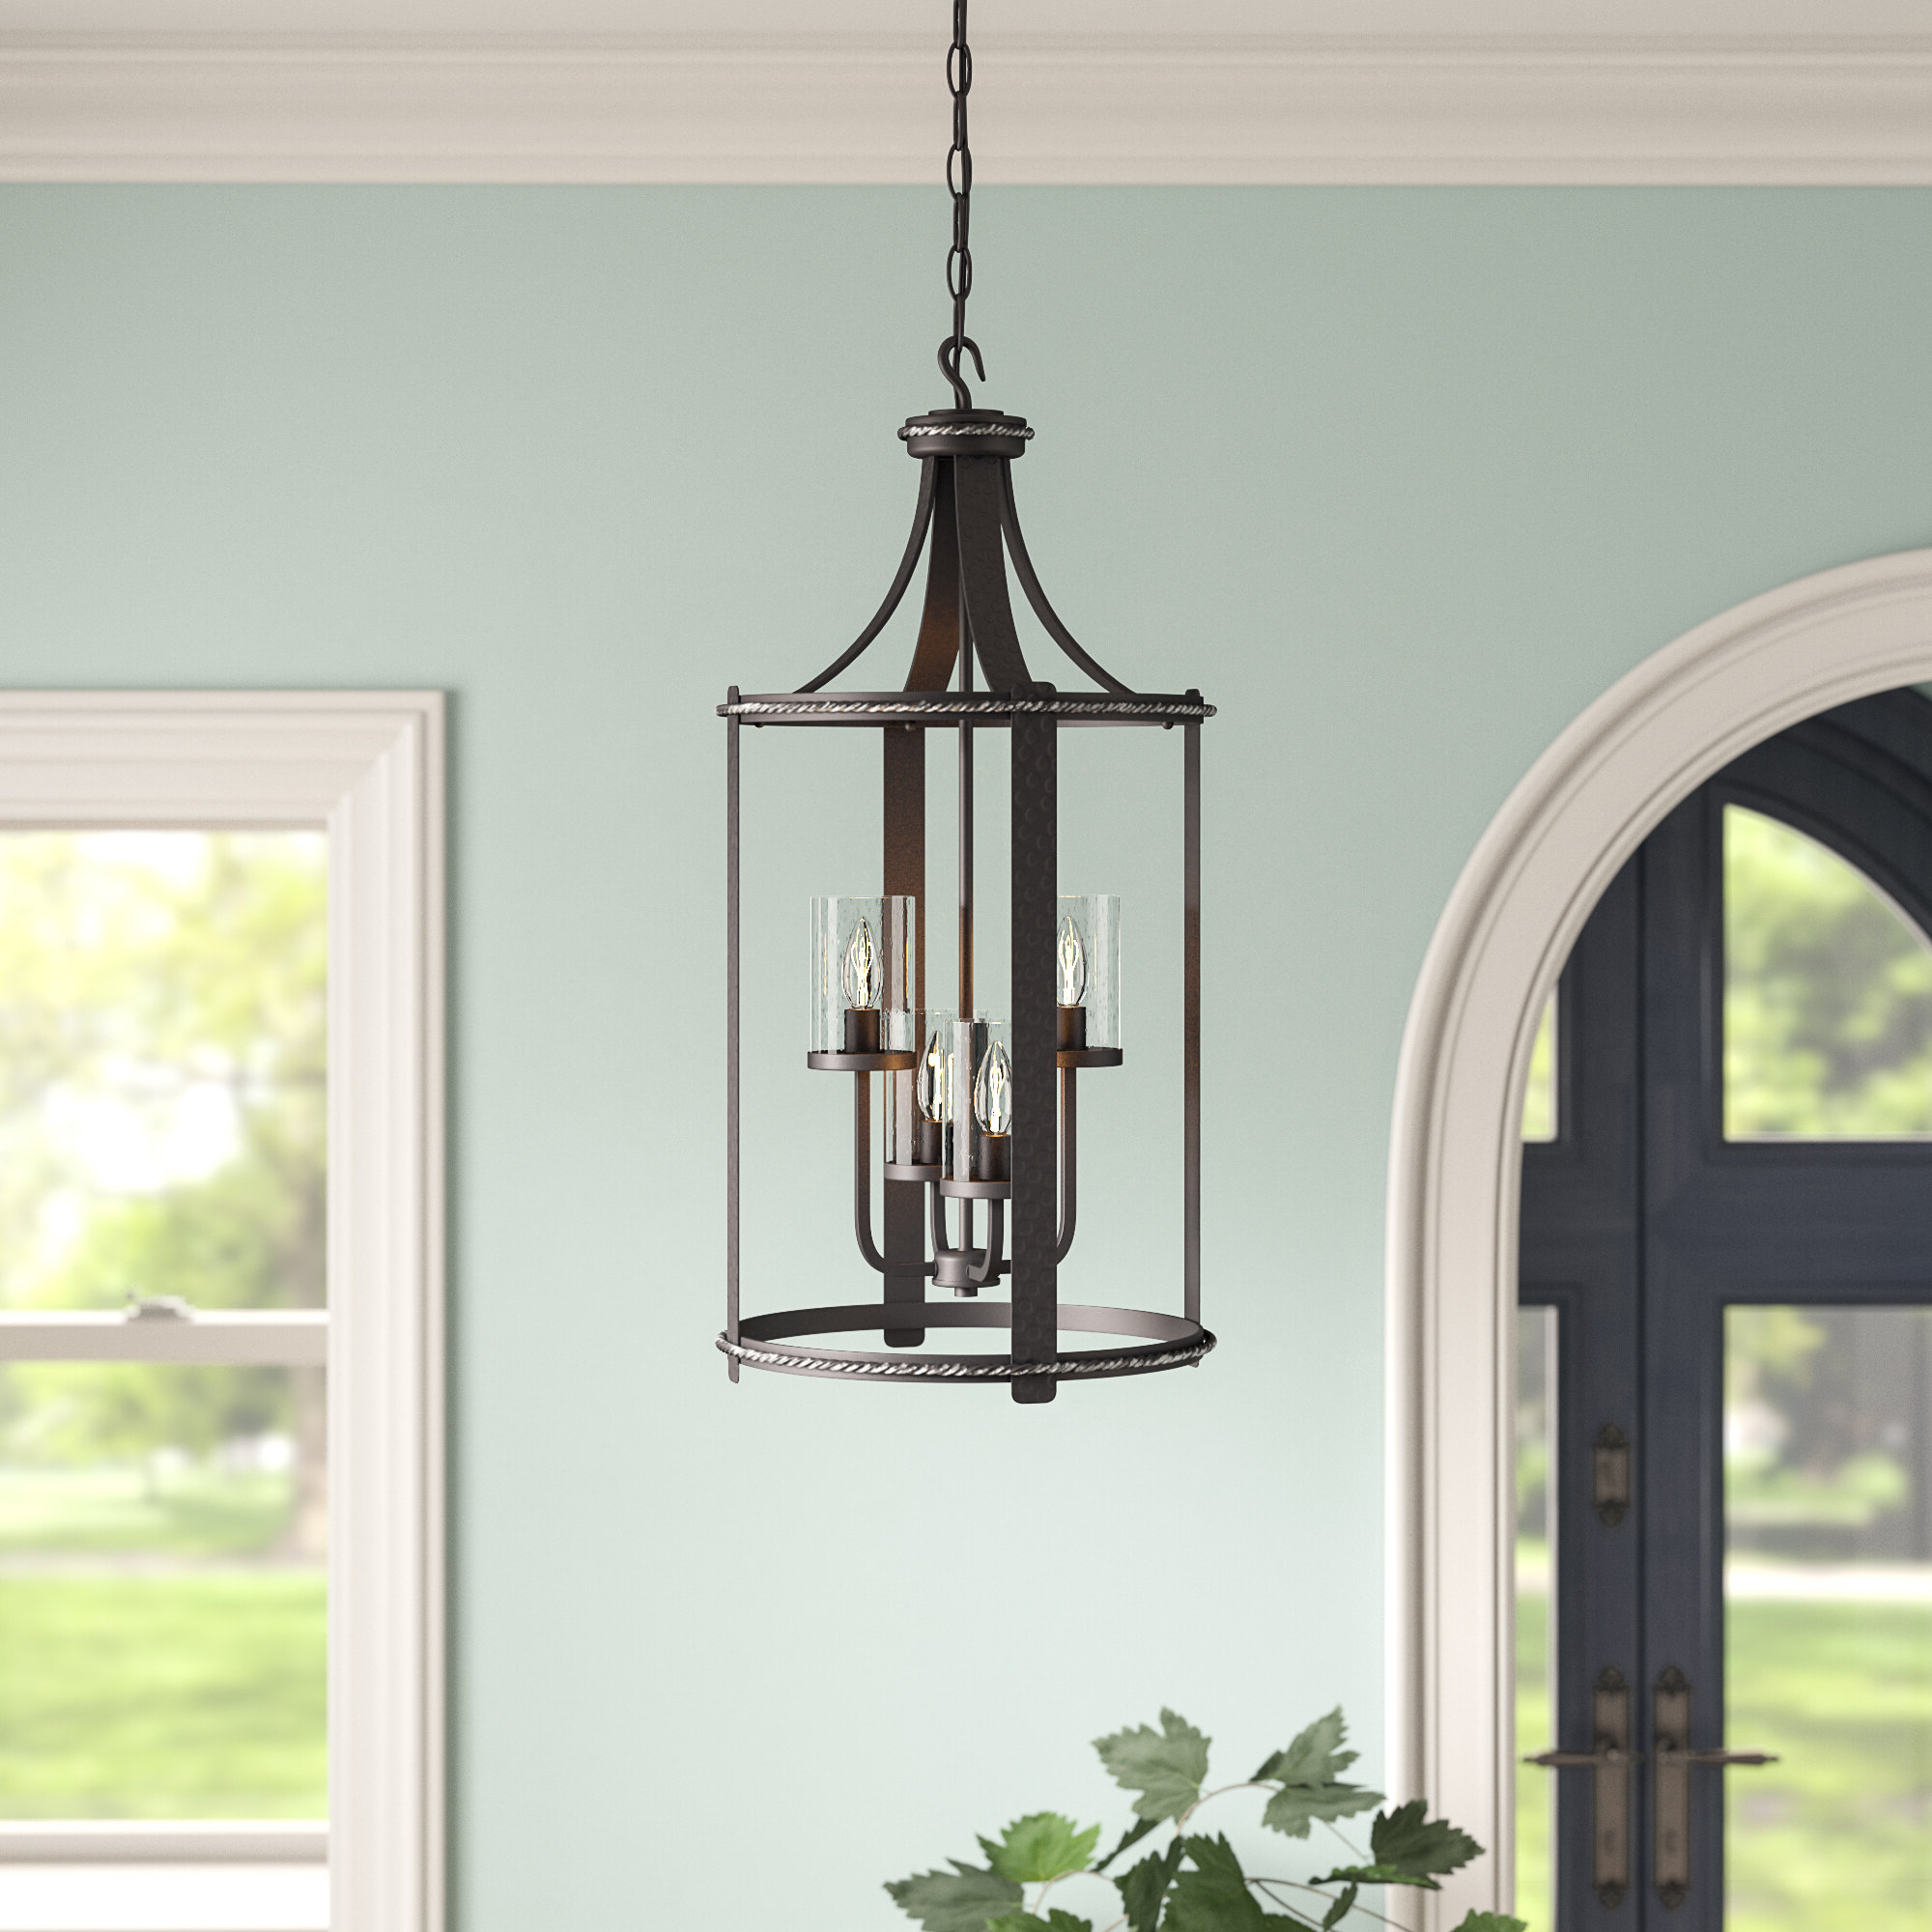 Newest Warner Robins 3 Light Lantern Pendants Inside Halcott 4 Light Lantern Pendant (View 12 of 20)